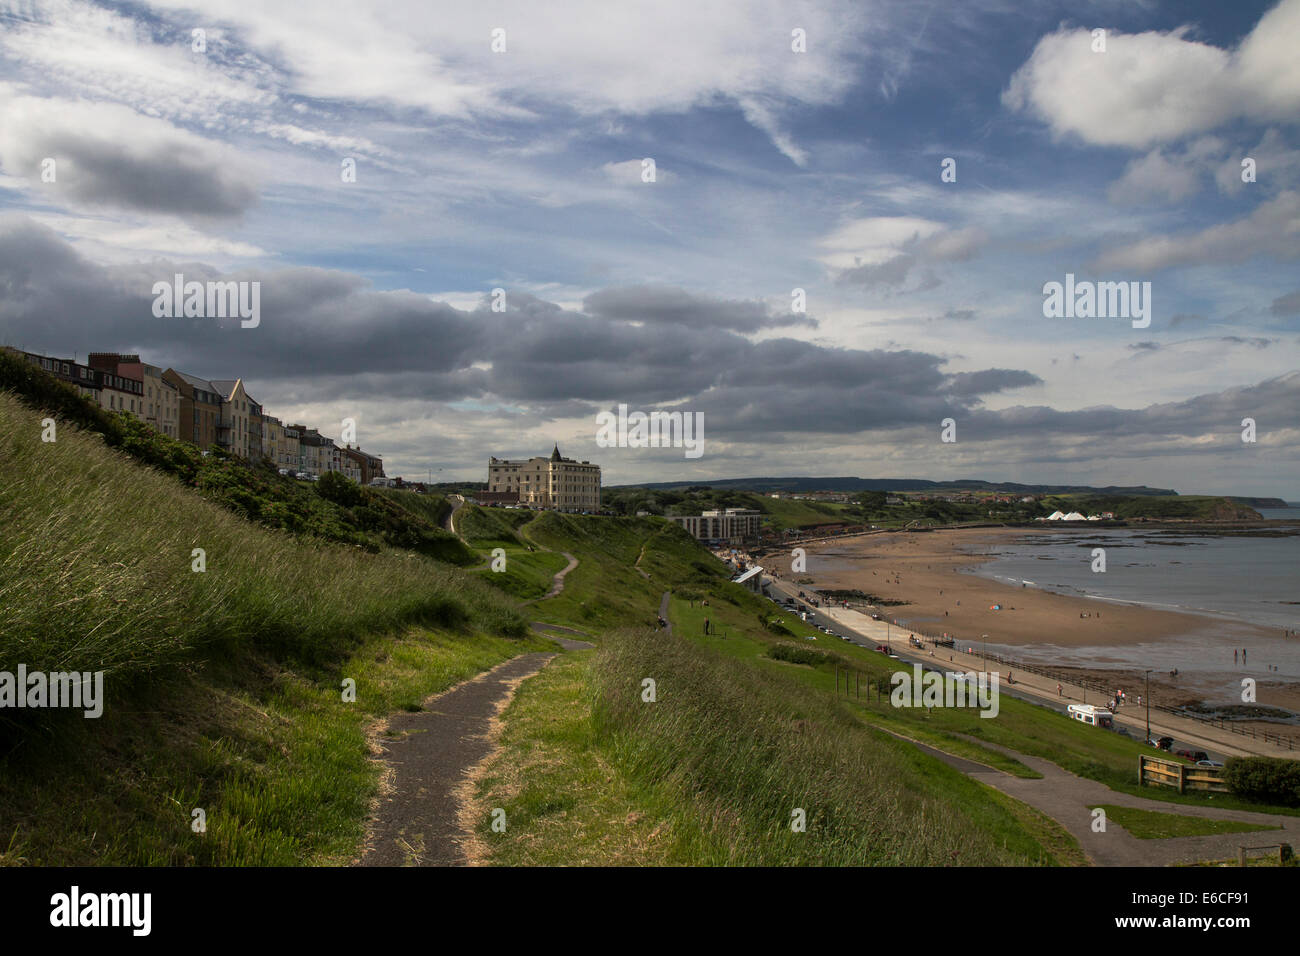 View of Scarborough North Bay - Stock Image